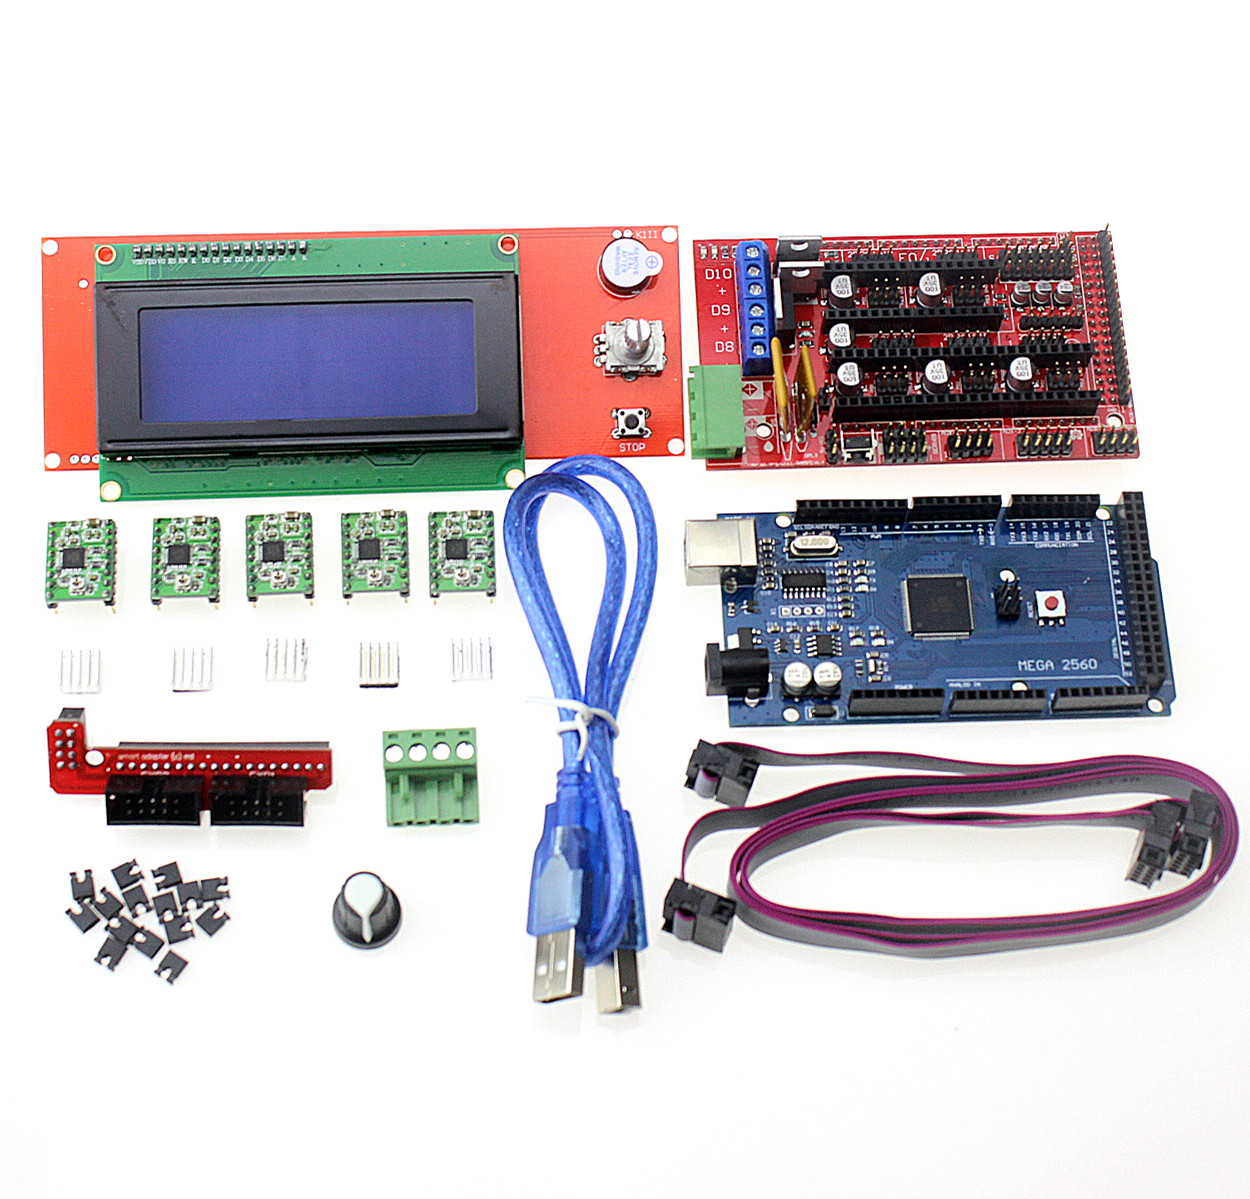 3D Printer Kit Mega 2560 R3 + 1Pcs RAMPS 1.4 Controller + 5Pcs A4988 Stepper Driver Module / RAMPS 1.4 2004 LCD Control new mega 2560 ramps 1 4 controller 4pcs a4988 stepper driver module for 3d printer kit for arduino reprap